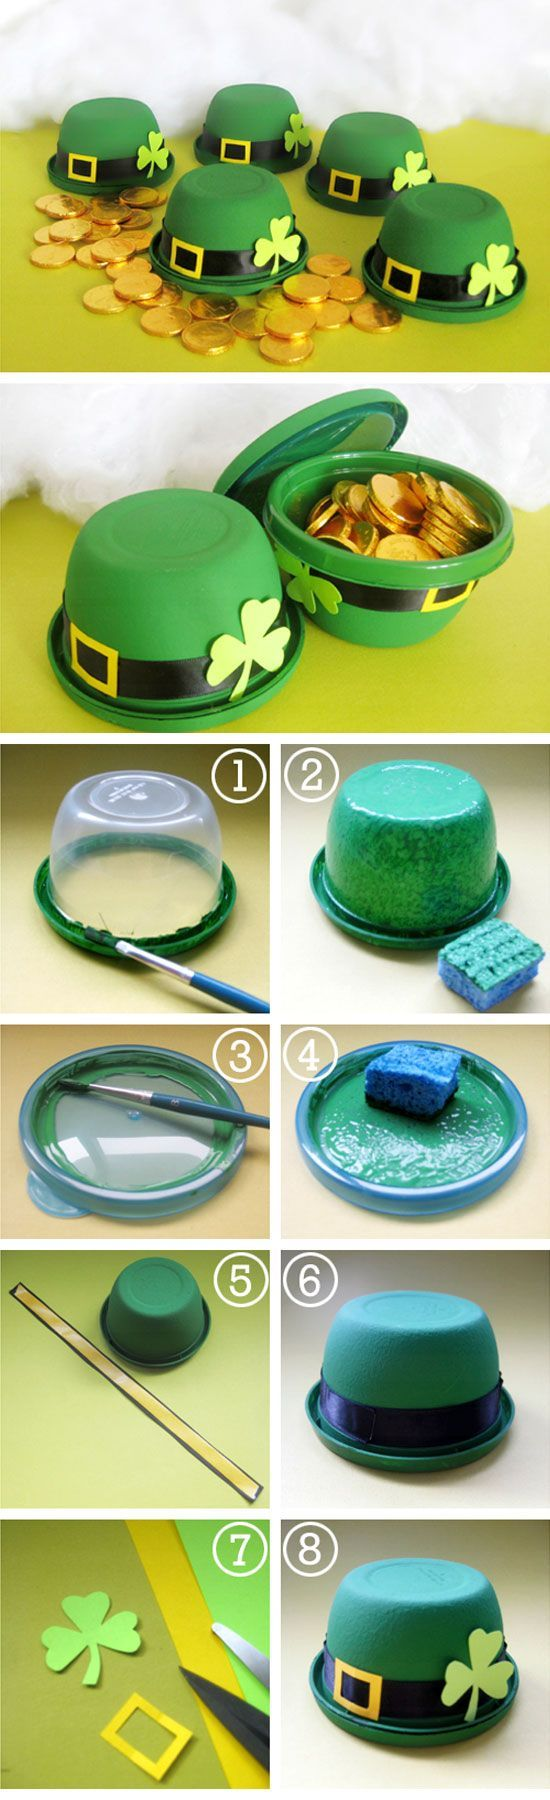 Leprechaun Hats | DIY St Patricks Day Crafts for Kids to Make | DIY St Patricks Day Crafts for Toddlers to Make